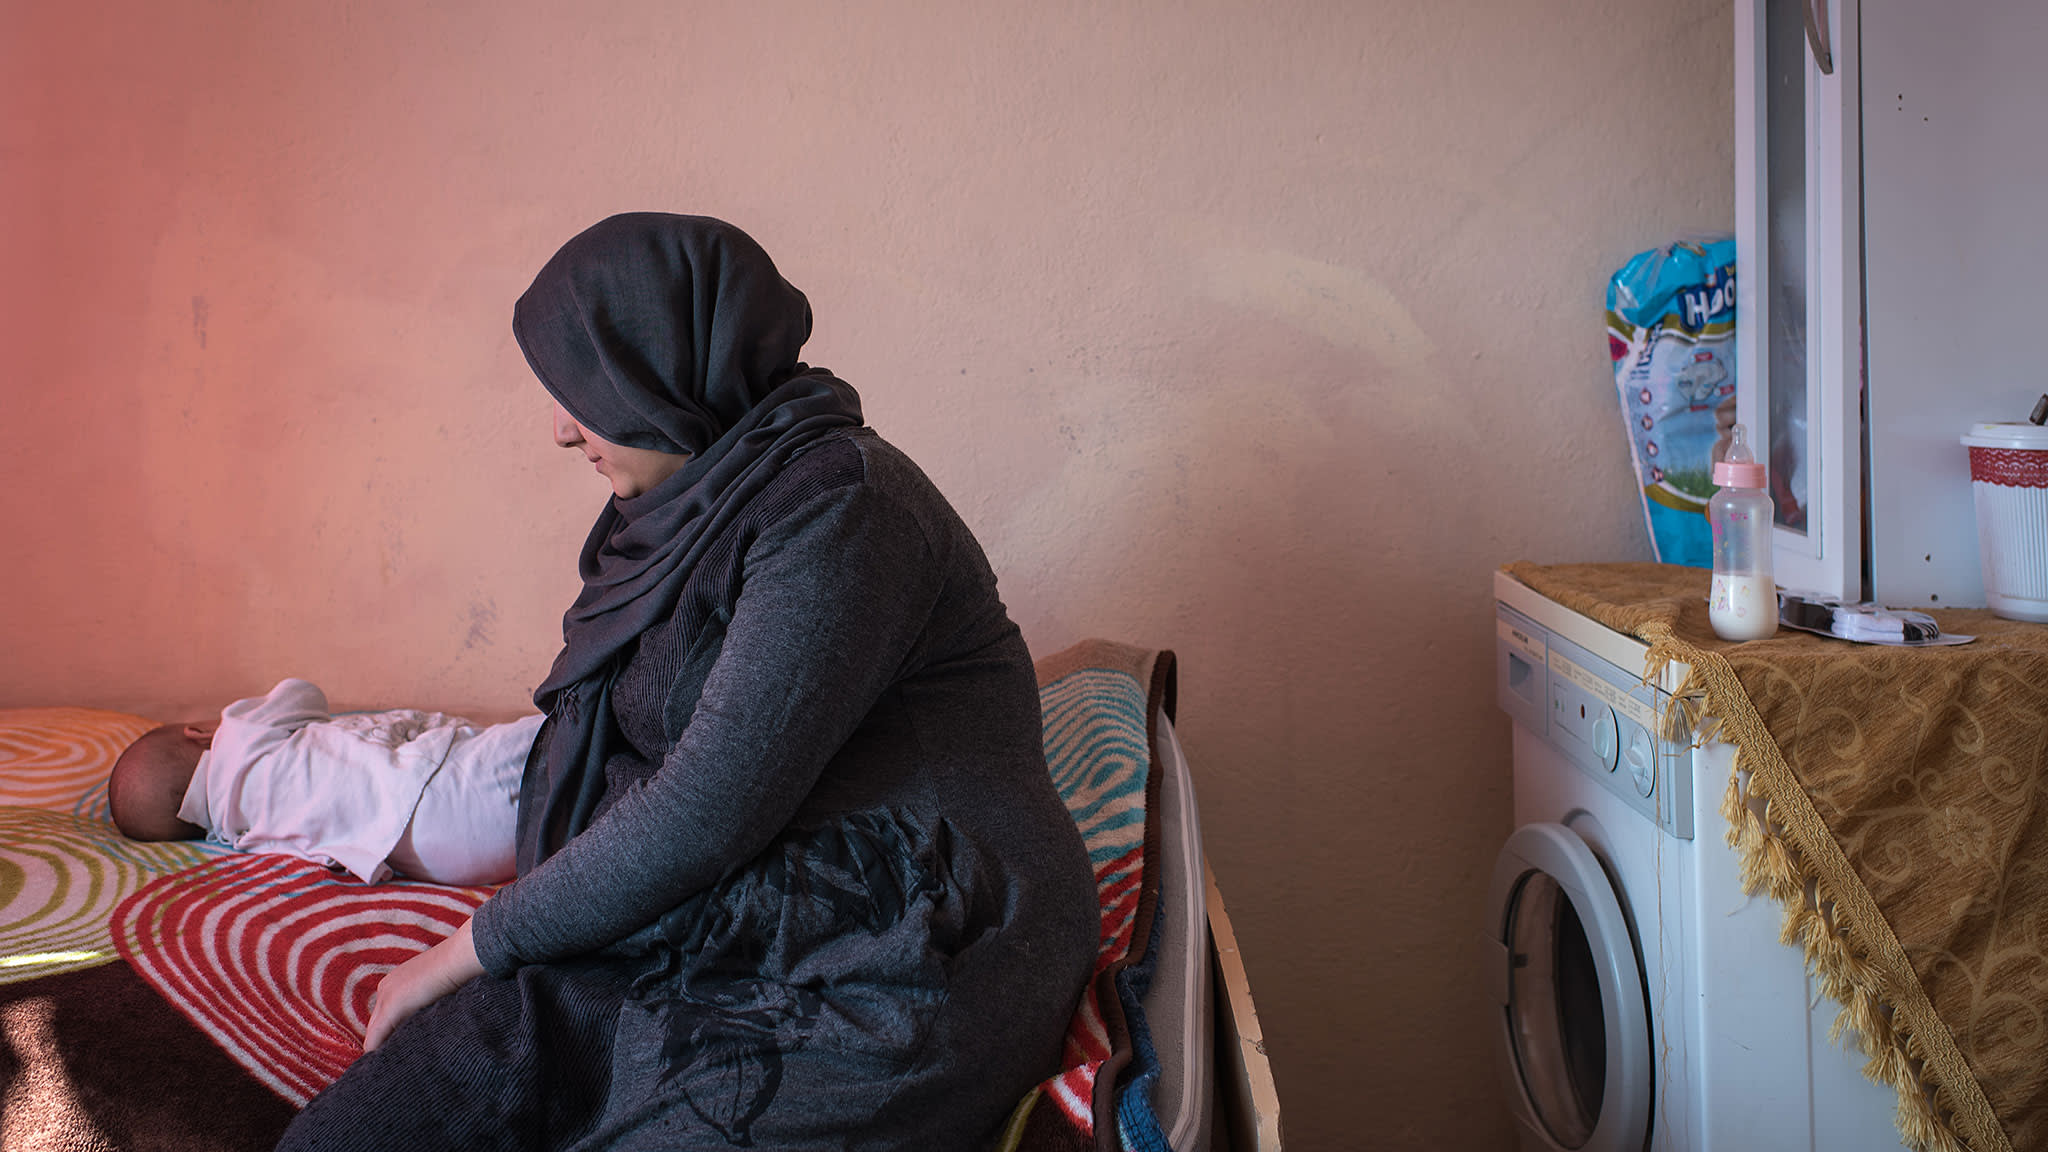 Syrian refugees married early face isolation and domestic violence